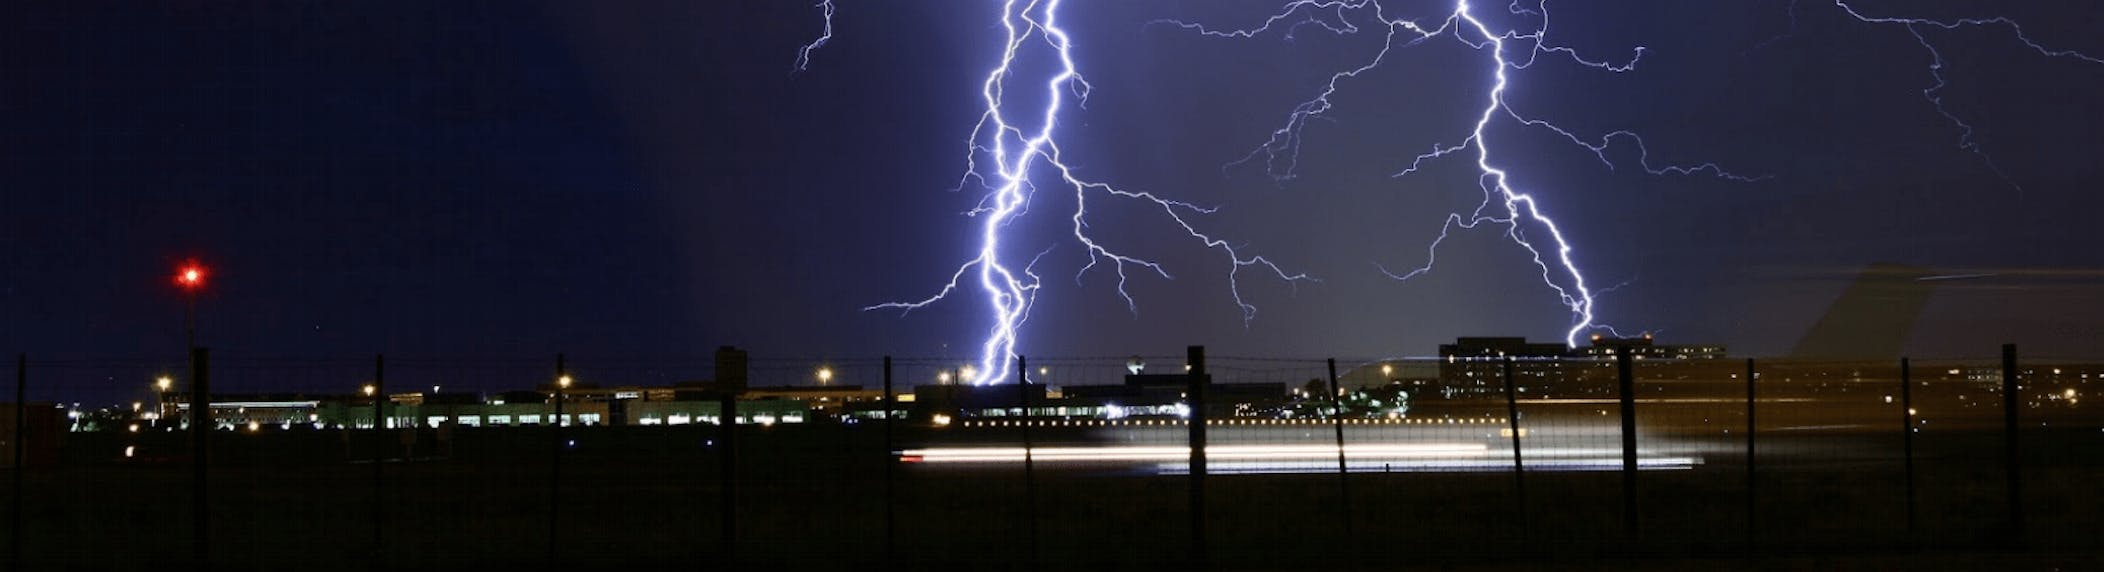 Personal realtime lightning alerts to your mobile